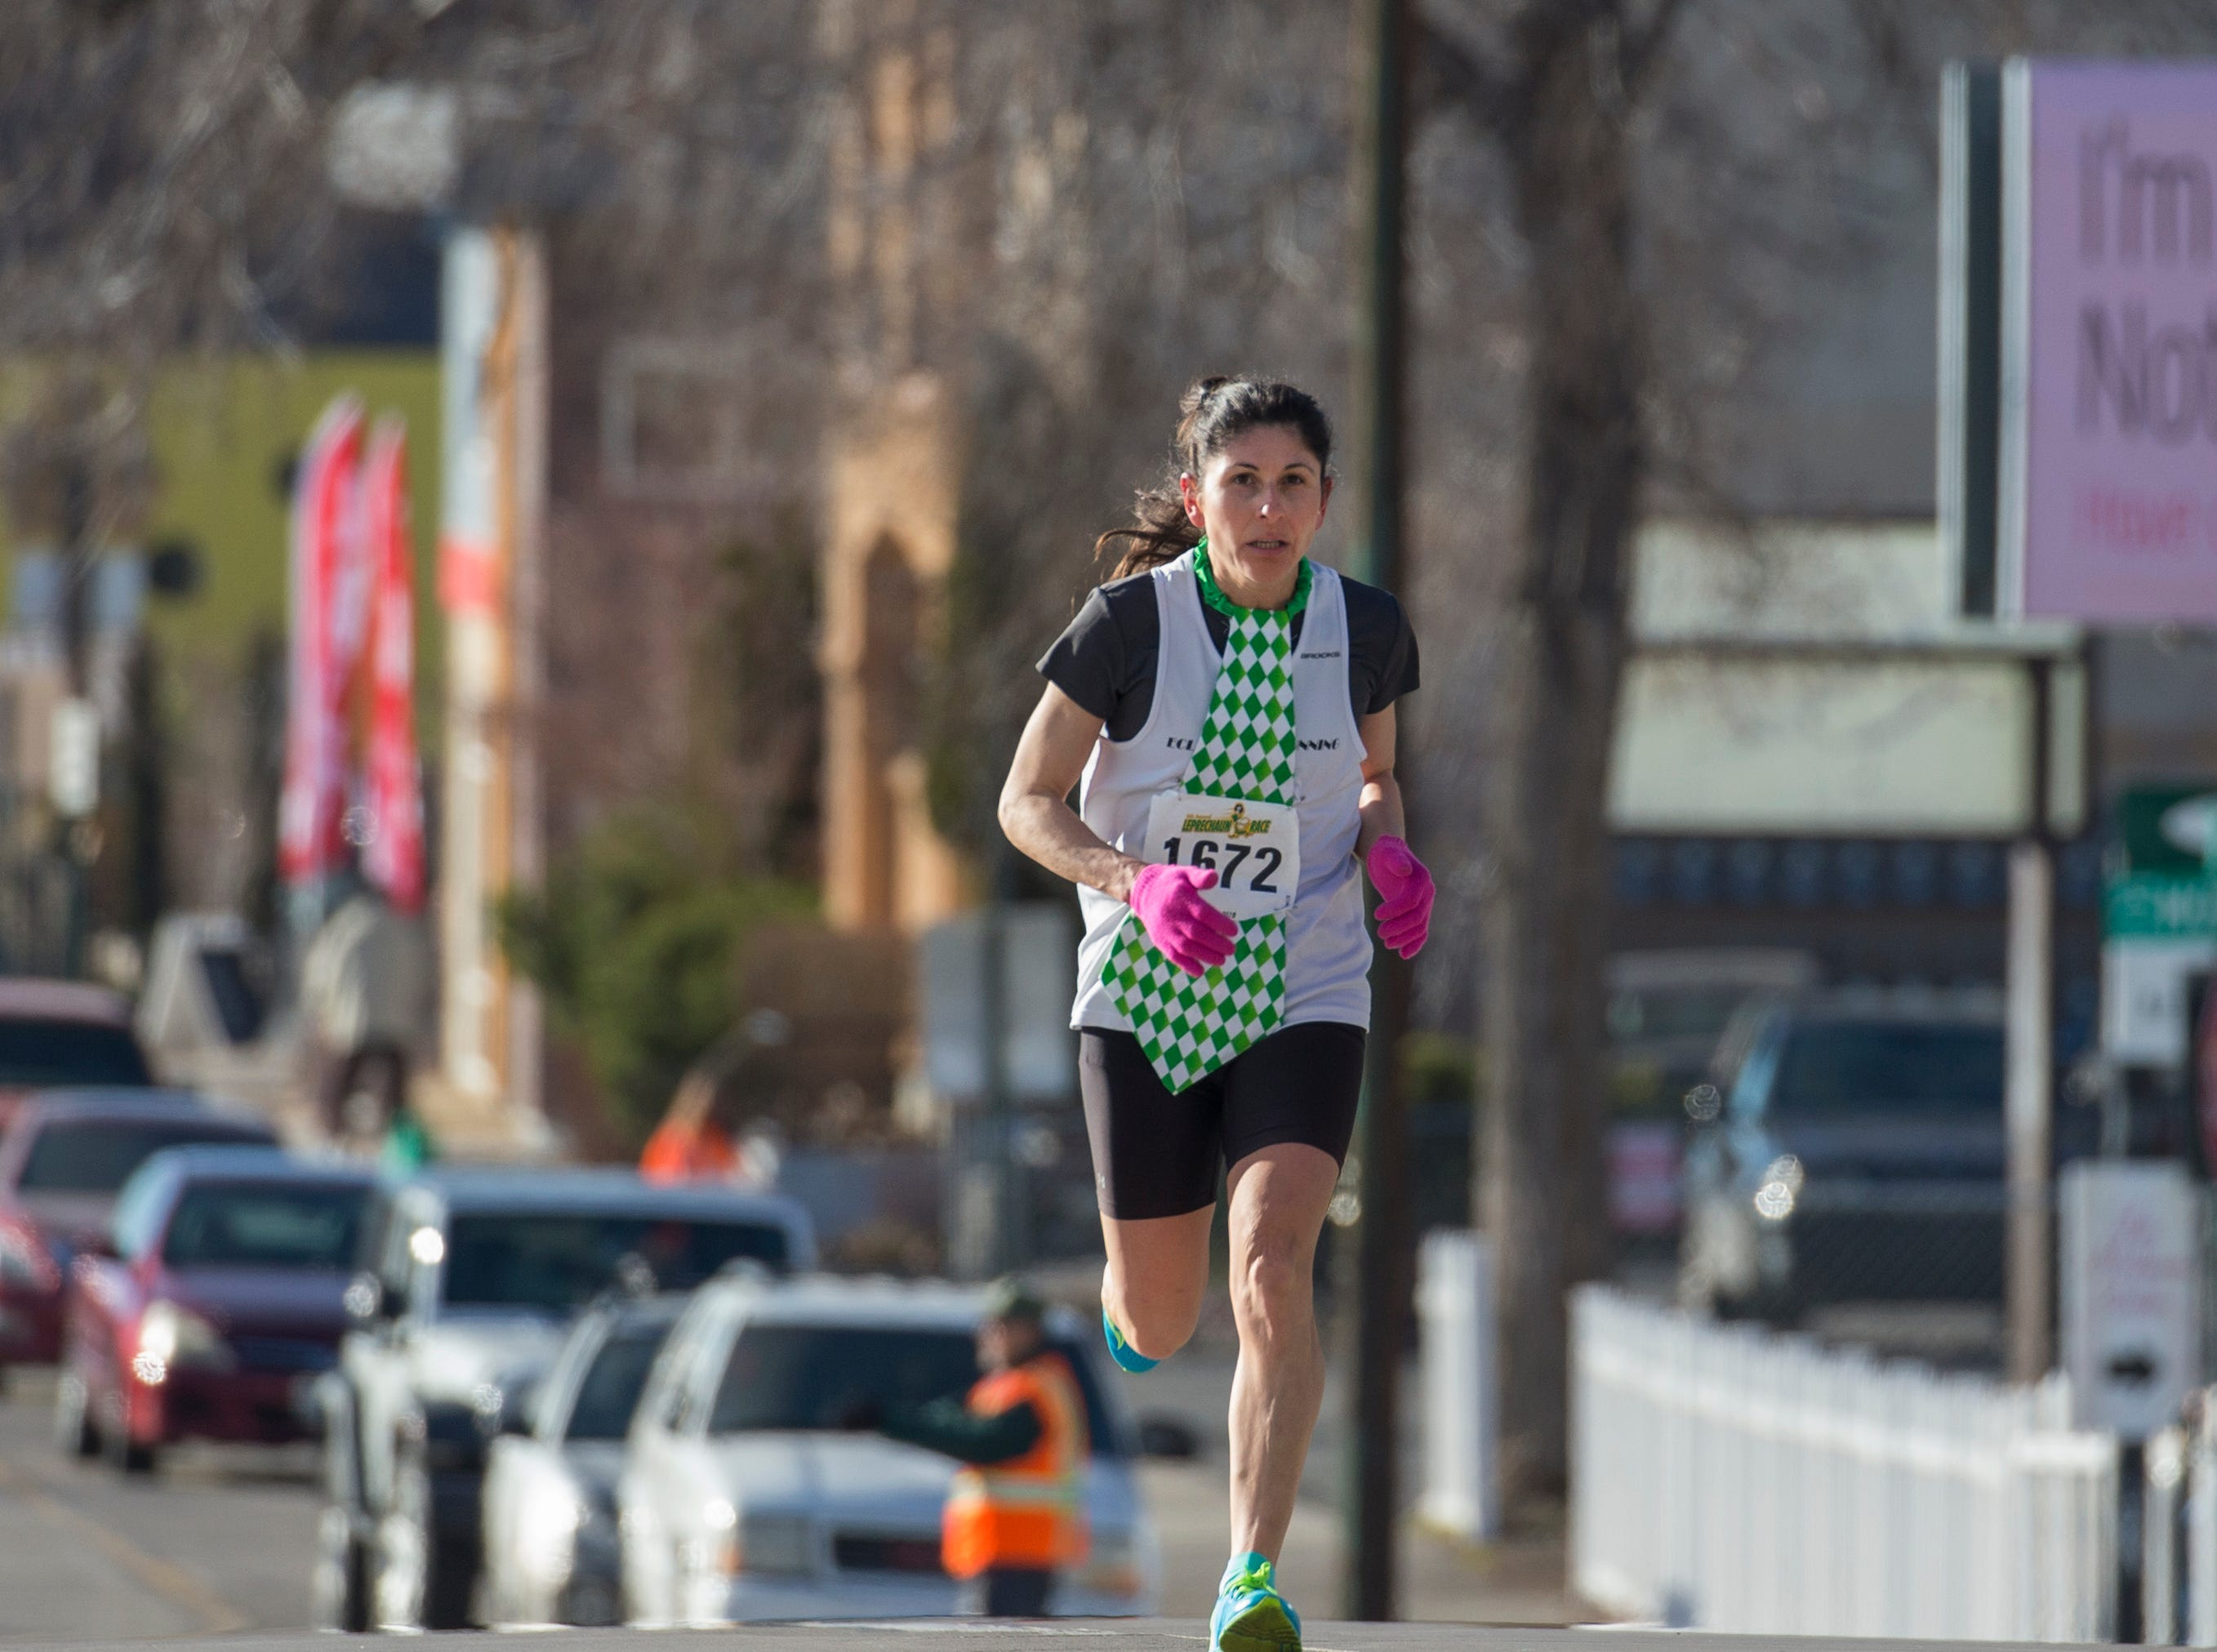 Women's winner Ramona Sanchez approaches the finish line during the 7th annual Leprechaun Race in downtown Reno, Nevada on Sunday, March 17, 2019.